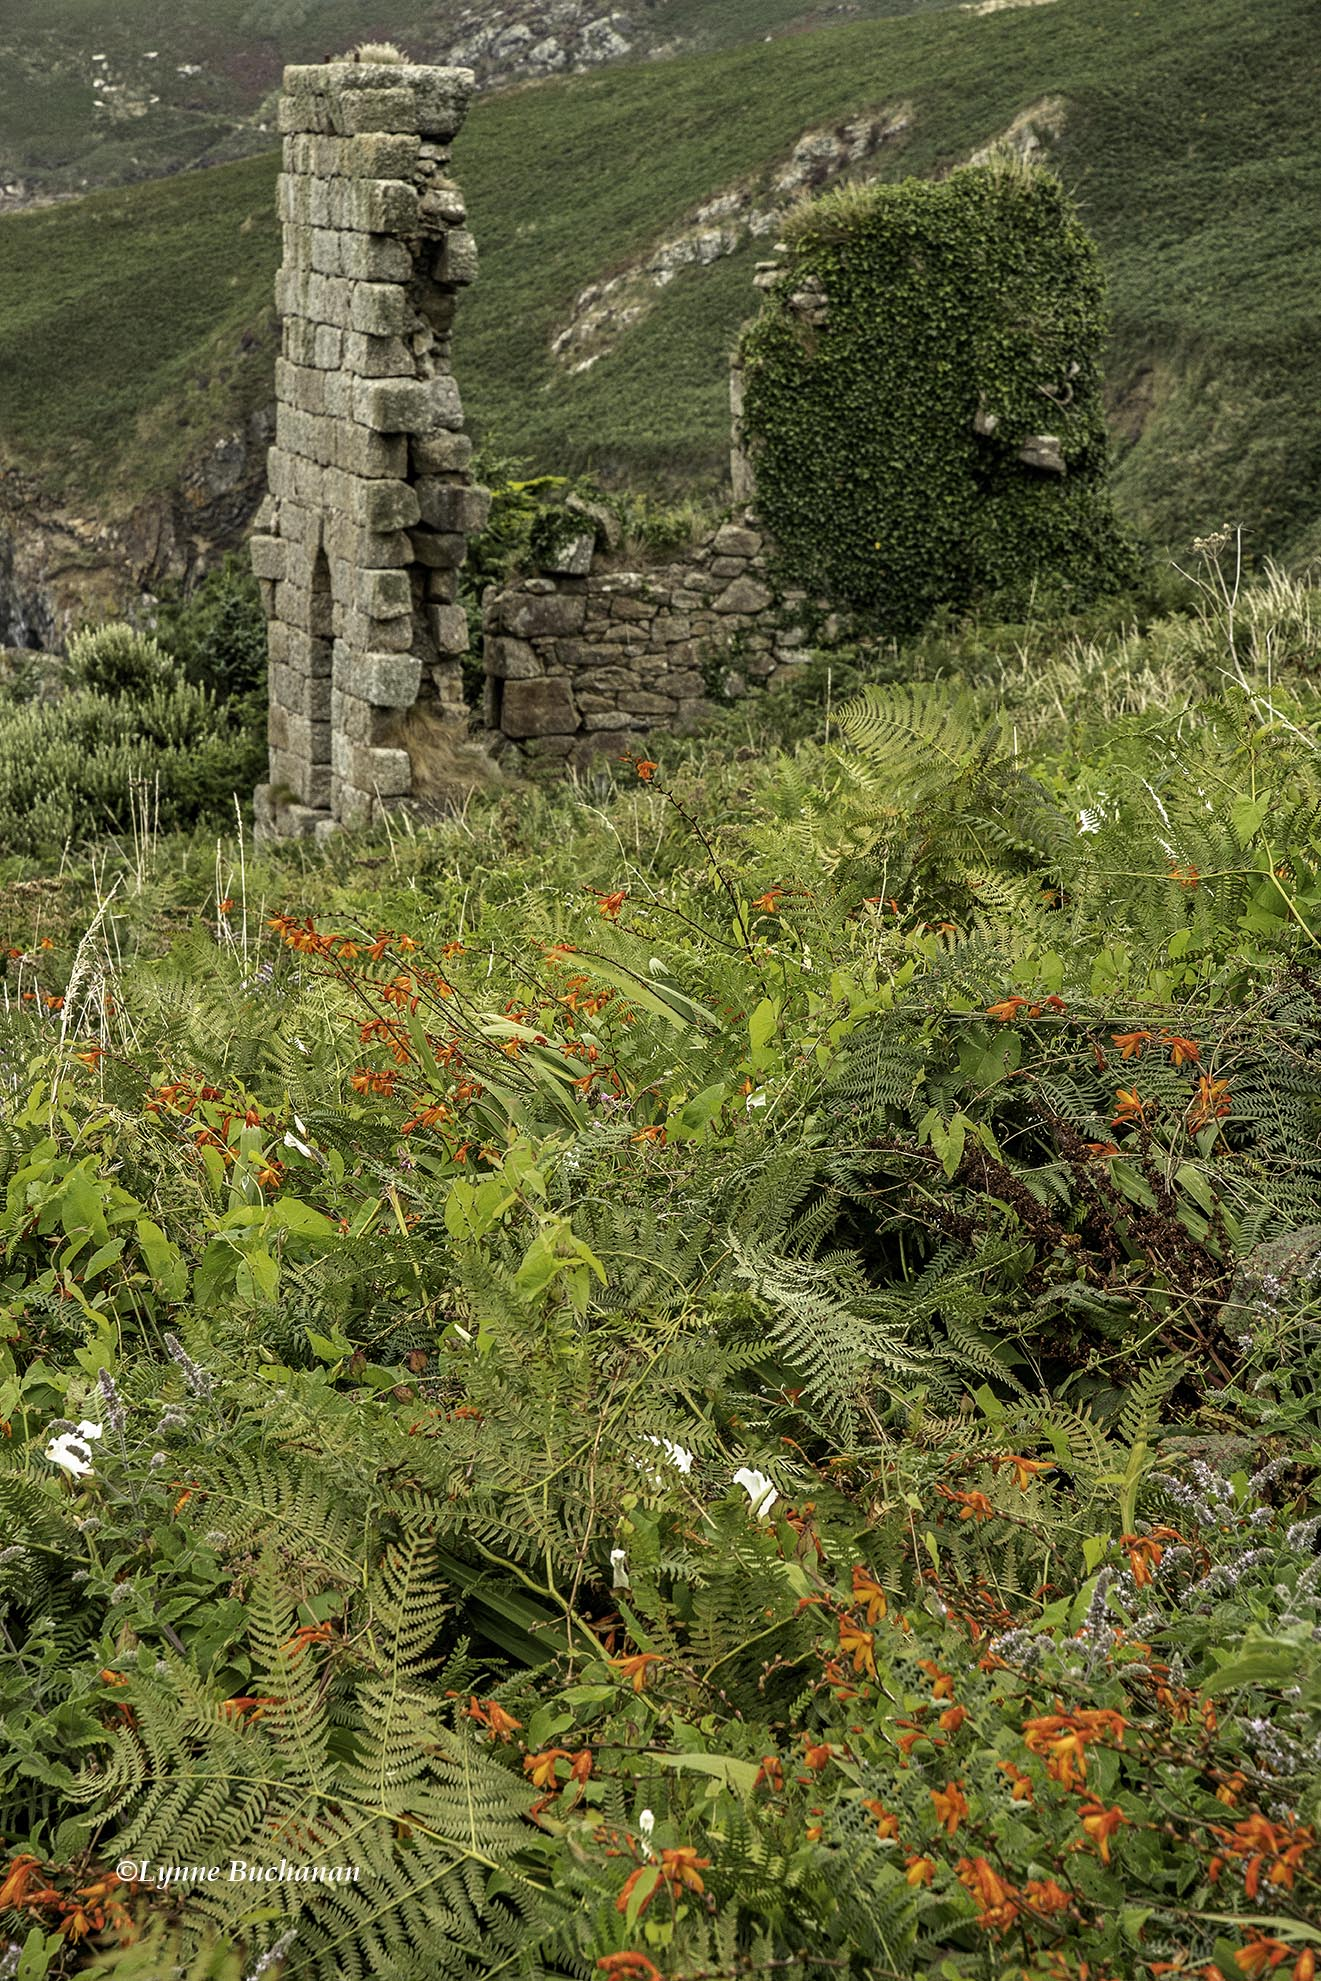 Engine House Remains at Gurnard's Head Mine with Wildflowers